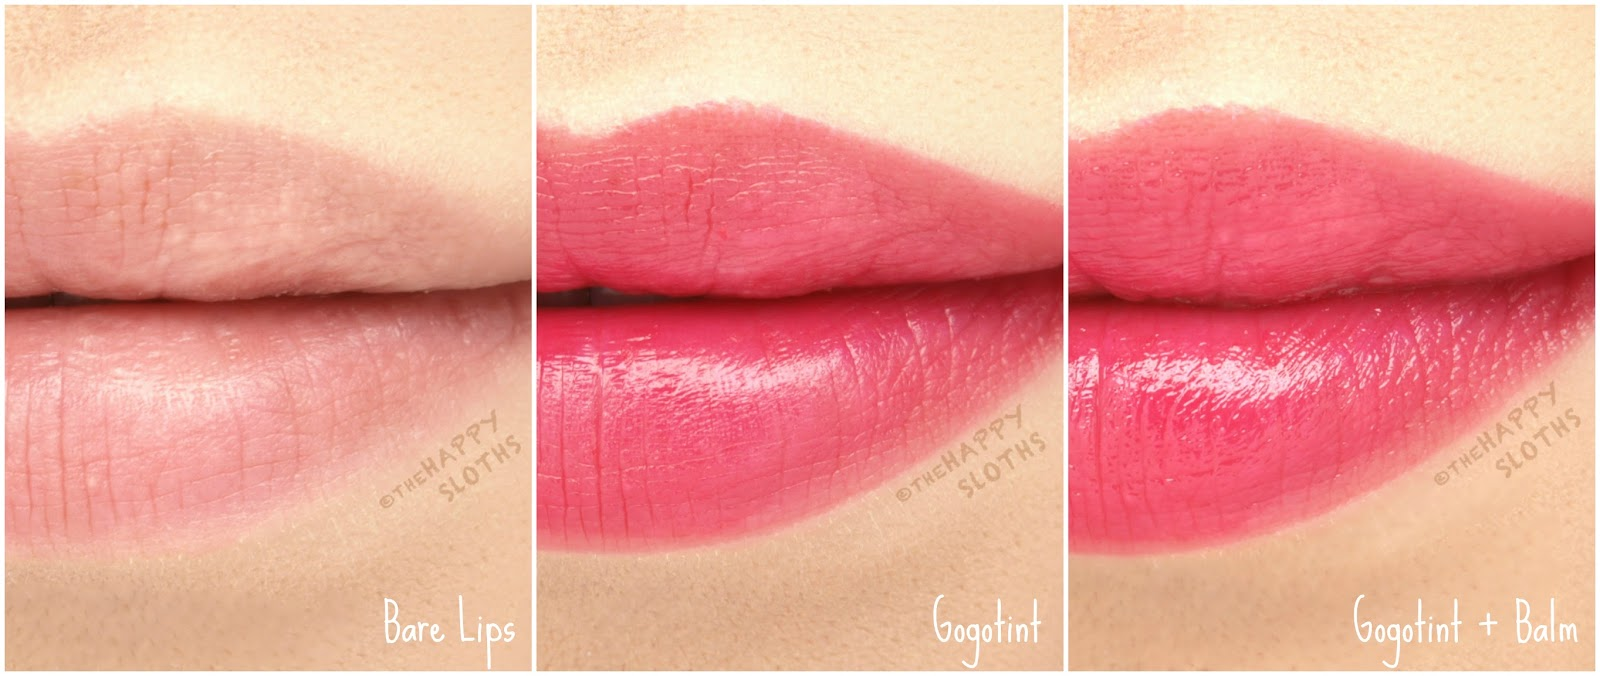 Benefit Gogotint Lip & Cheek Stain: Review and Swatches